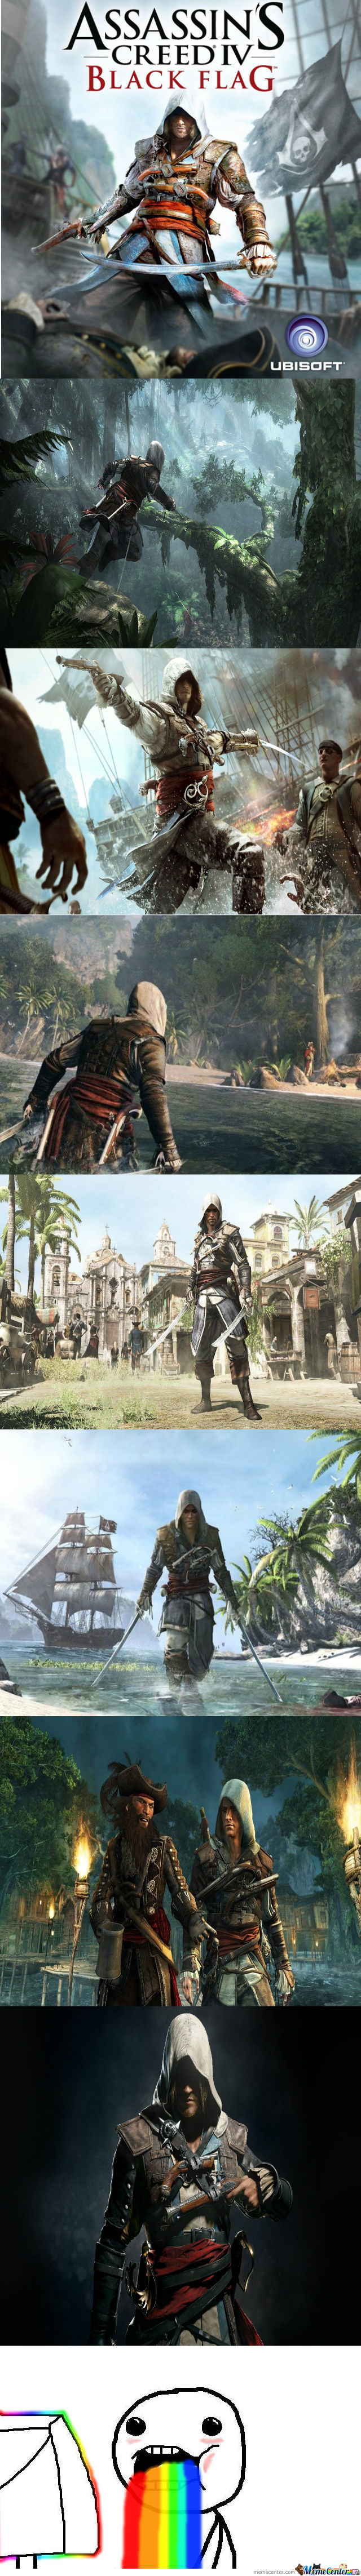 Assassin's Creed Black Flag Goodness